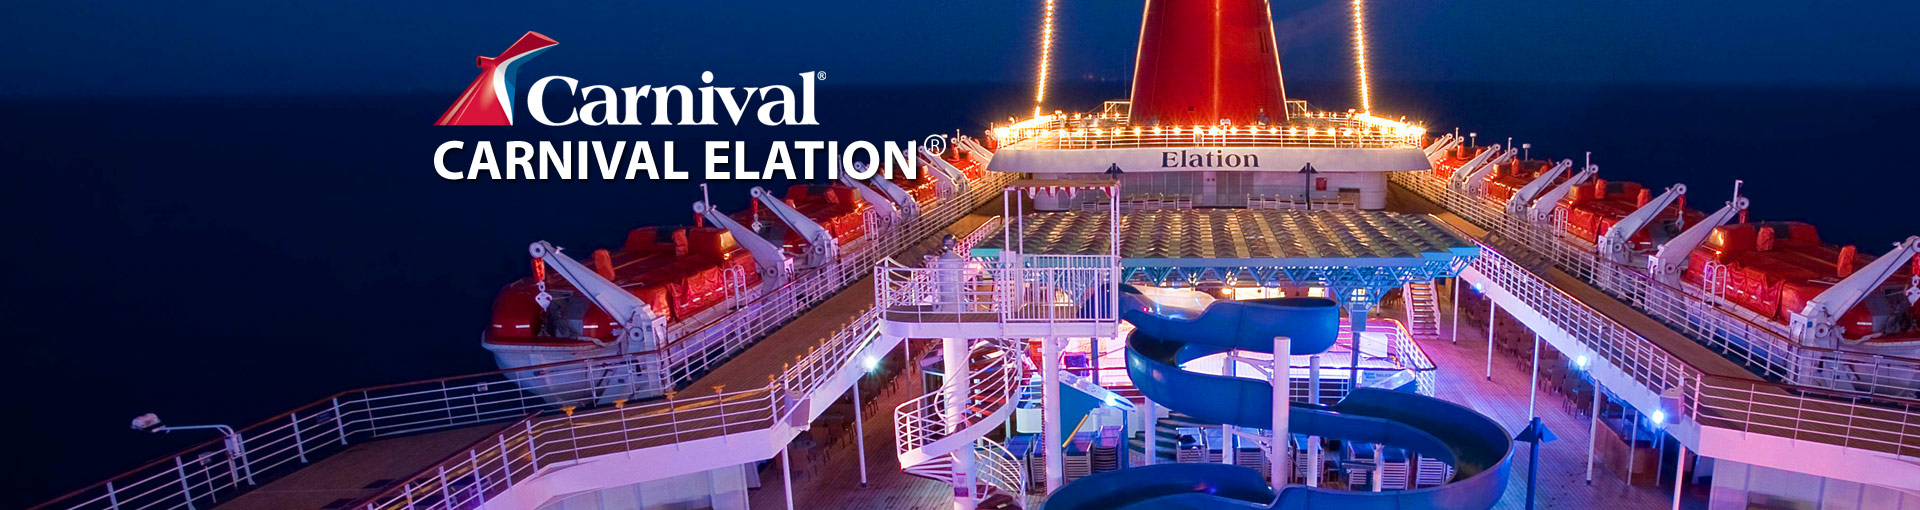 Ecstasy Carnival Cruise Lines